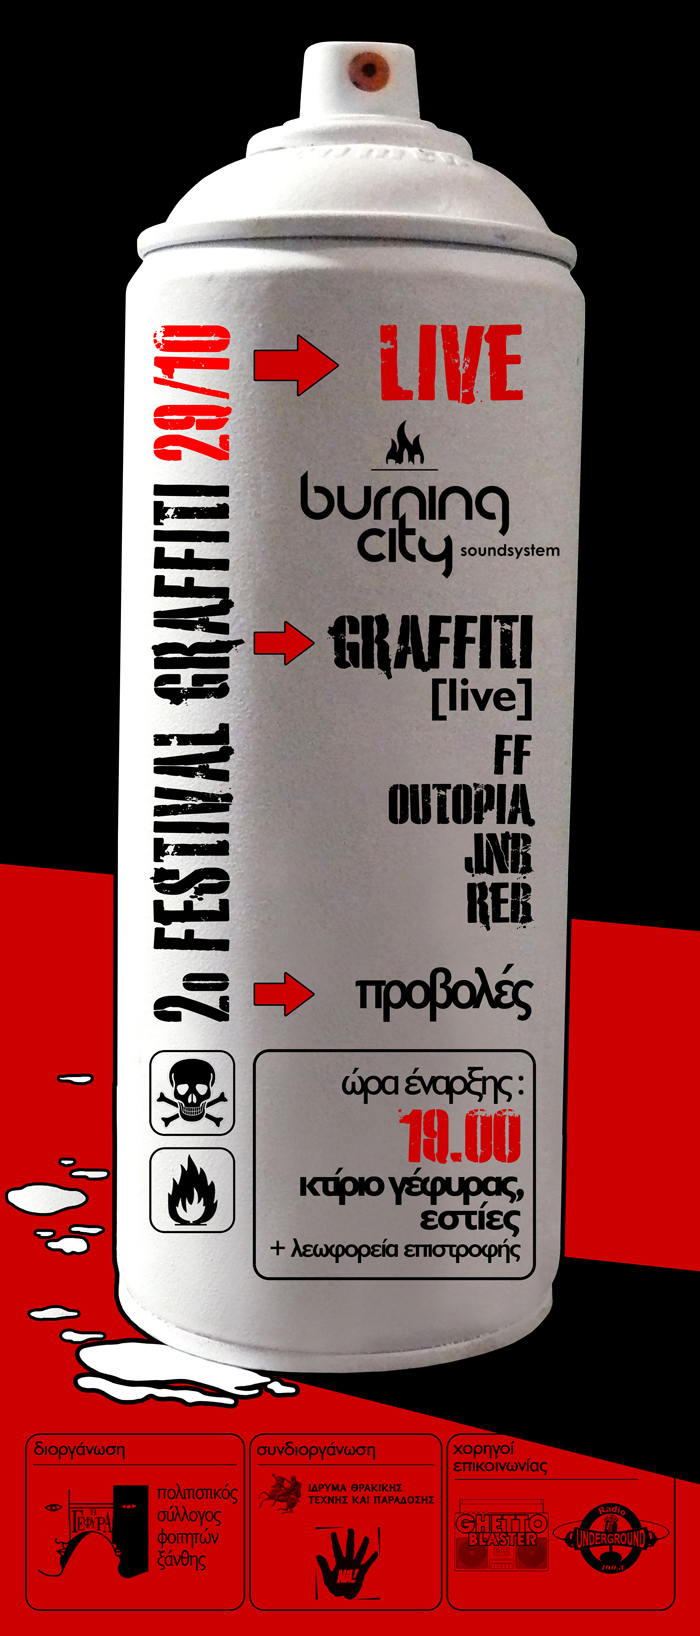 graffiti_poster_net